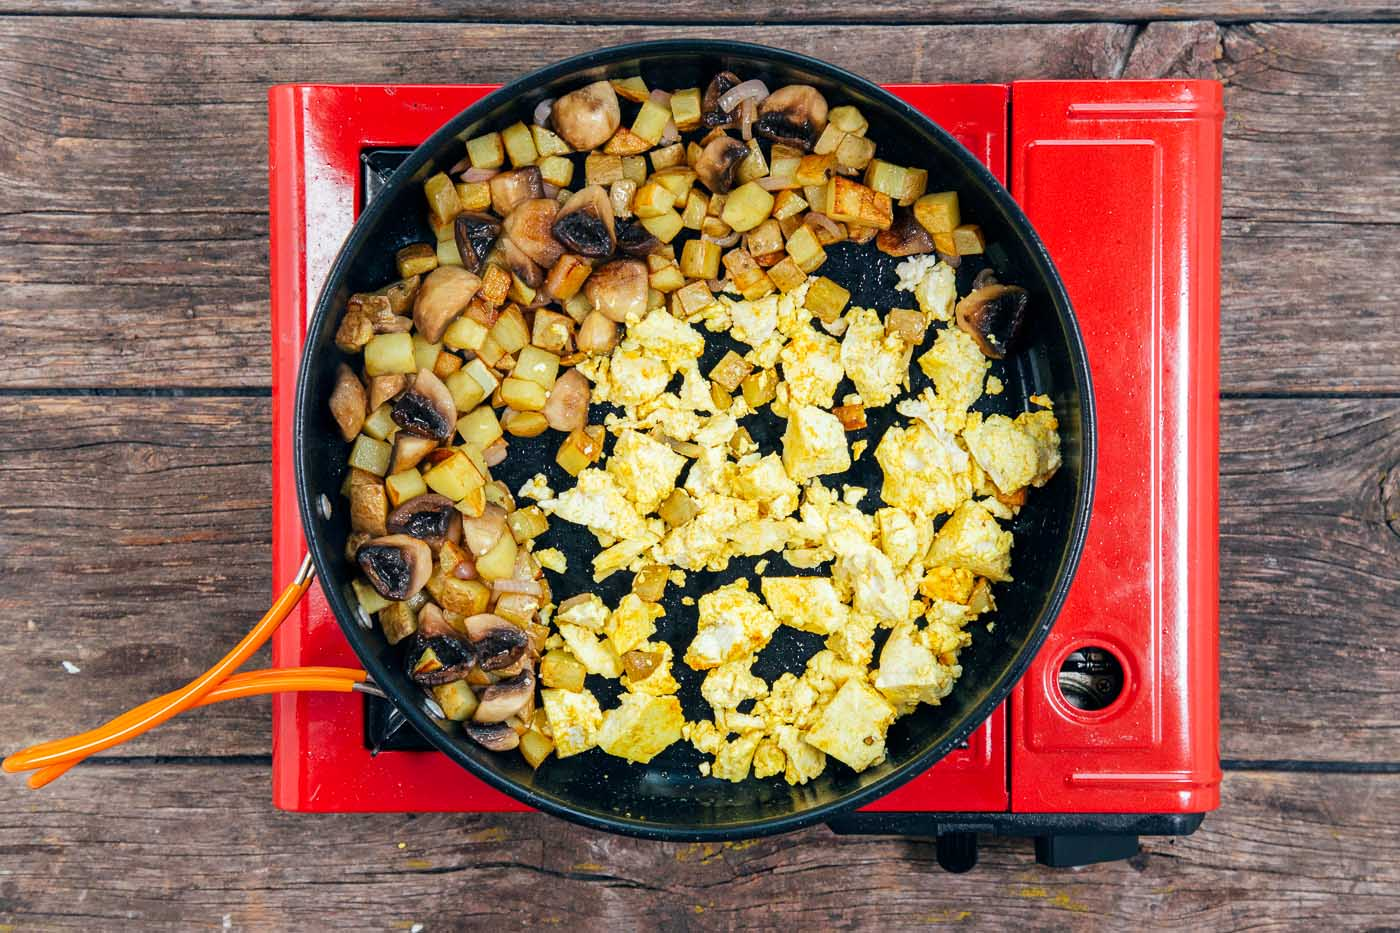 Cooking cubed potatoes and crumbled tofu in a large skillet for a scramble.